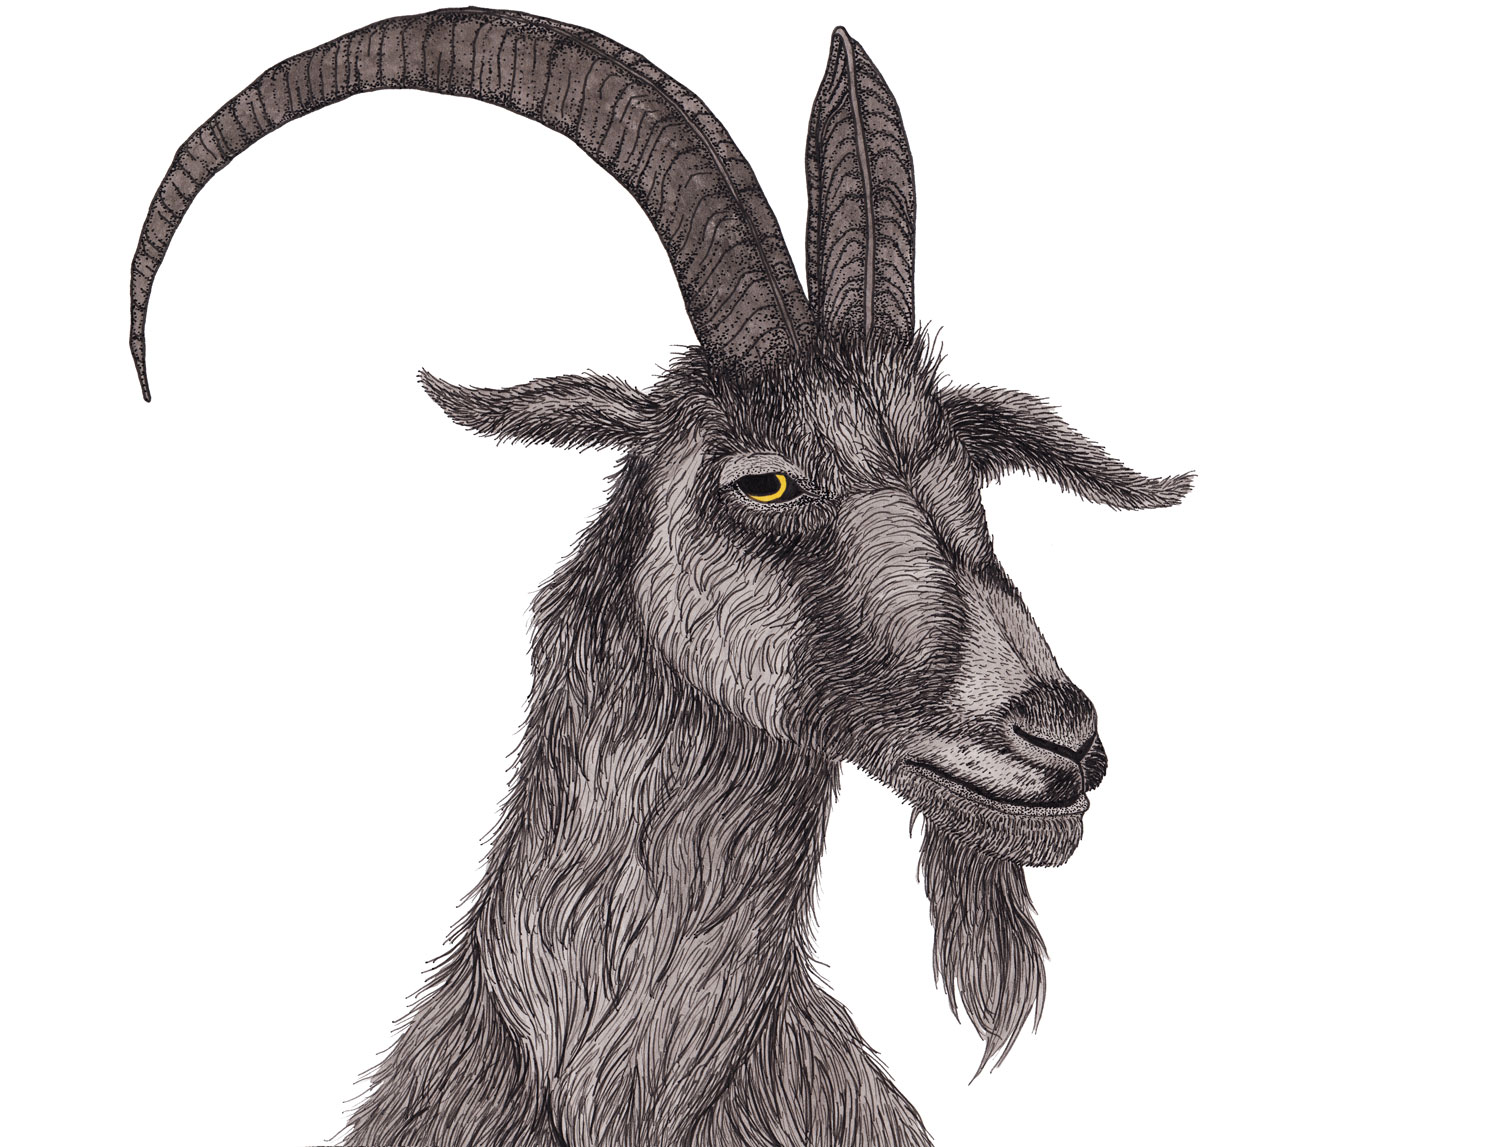 goat-black-phillip-illustration-matthew-woods.jpg